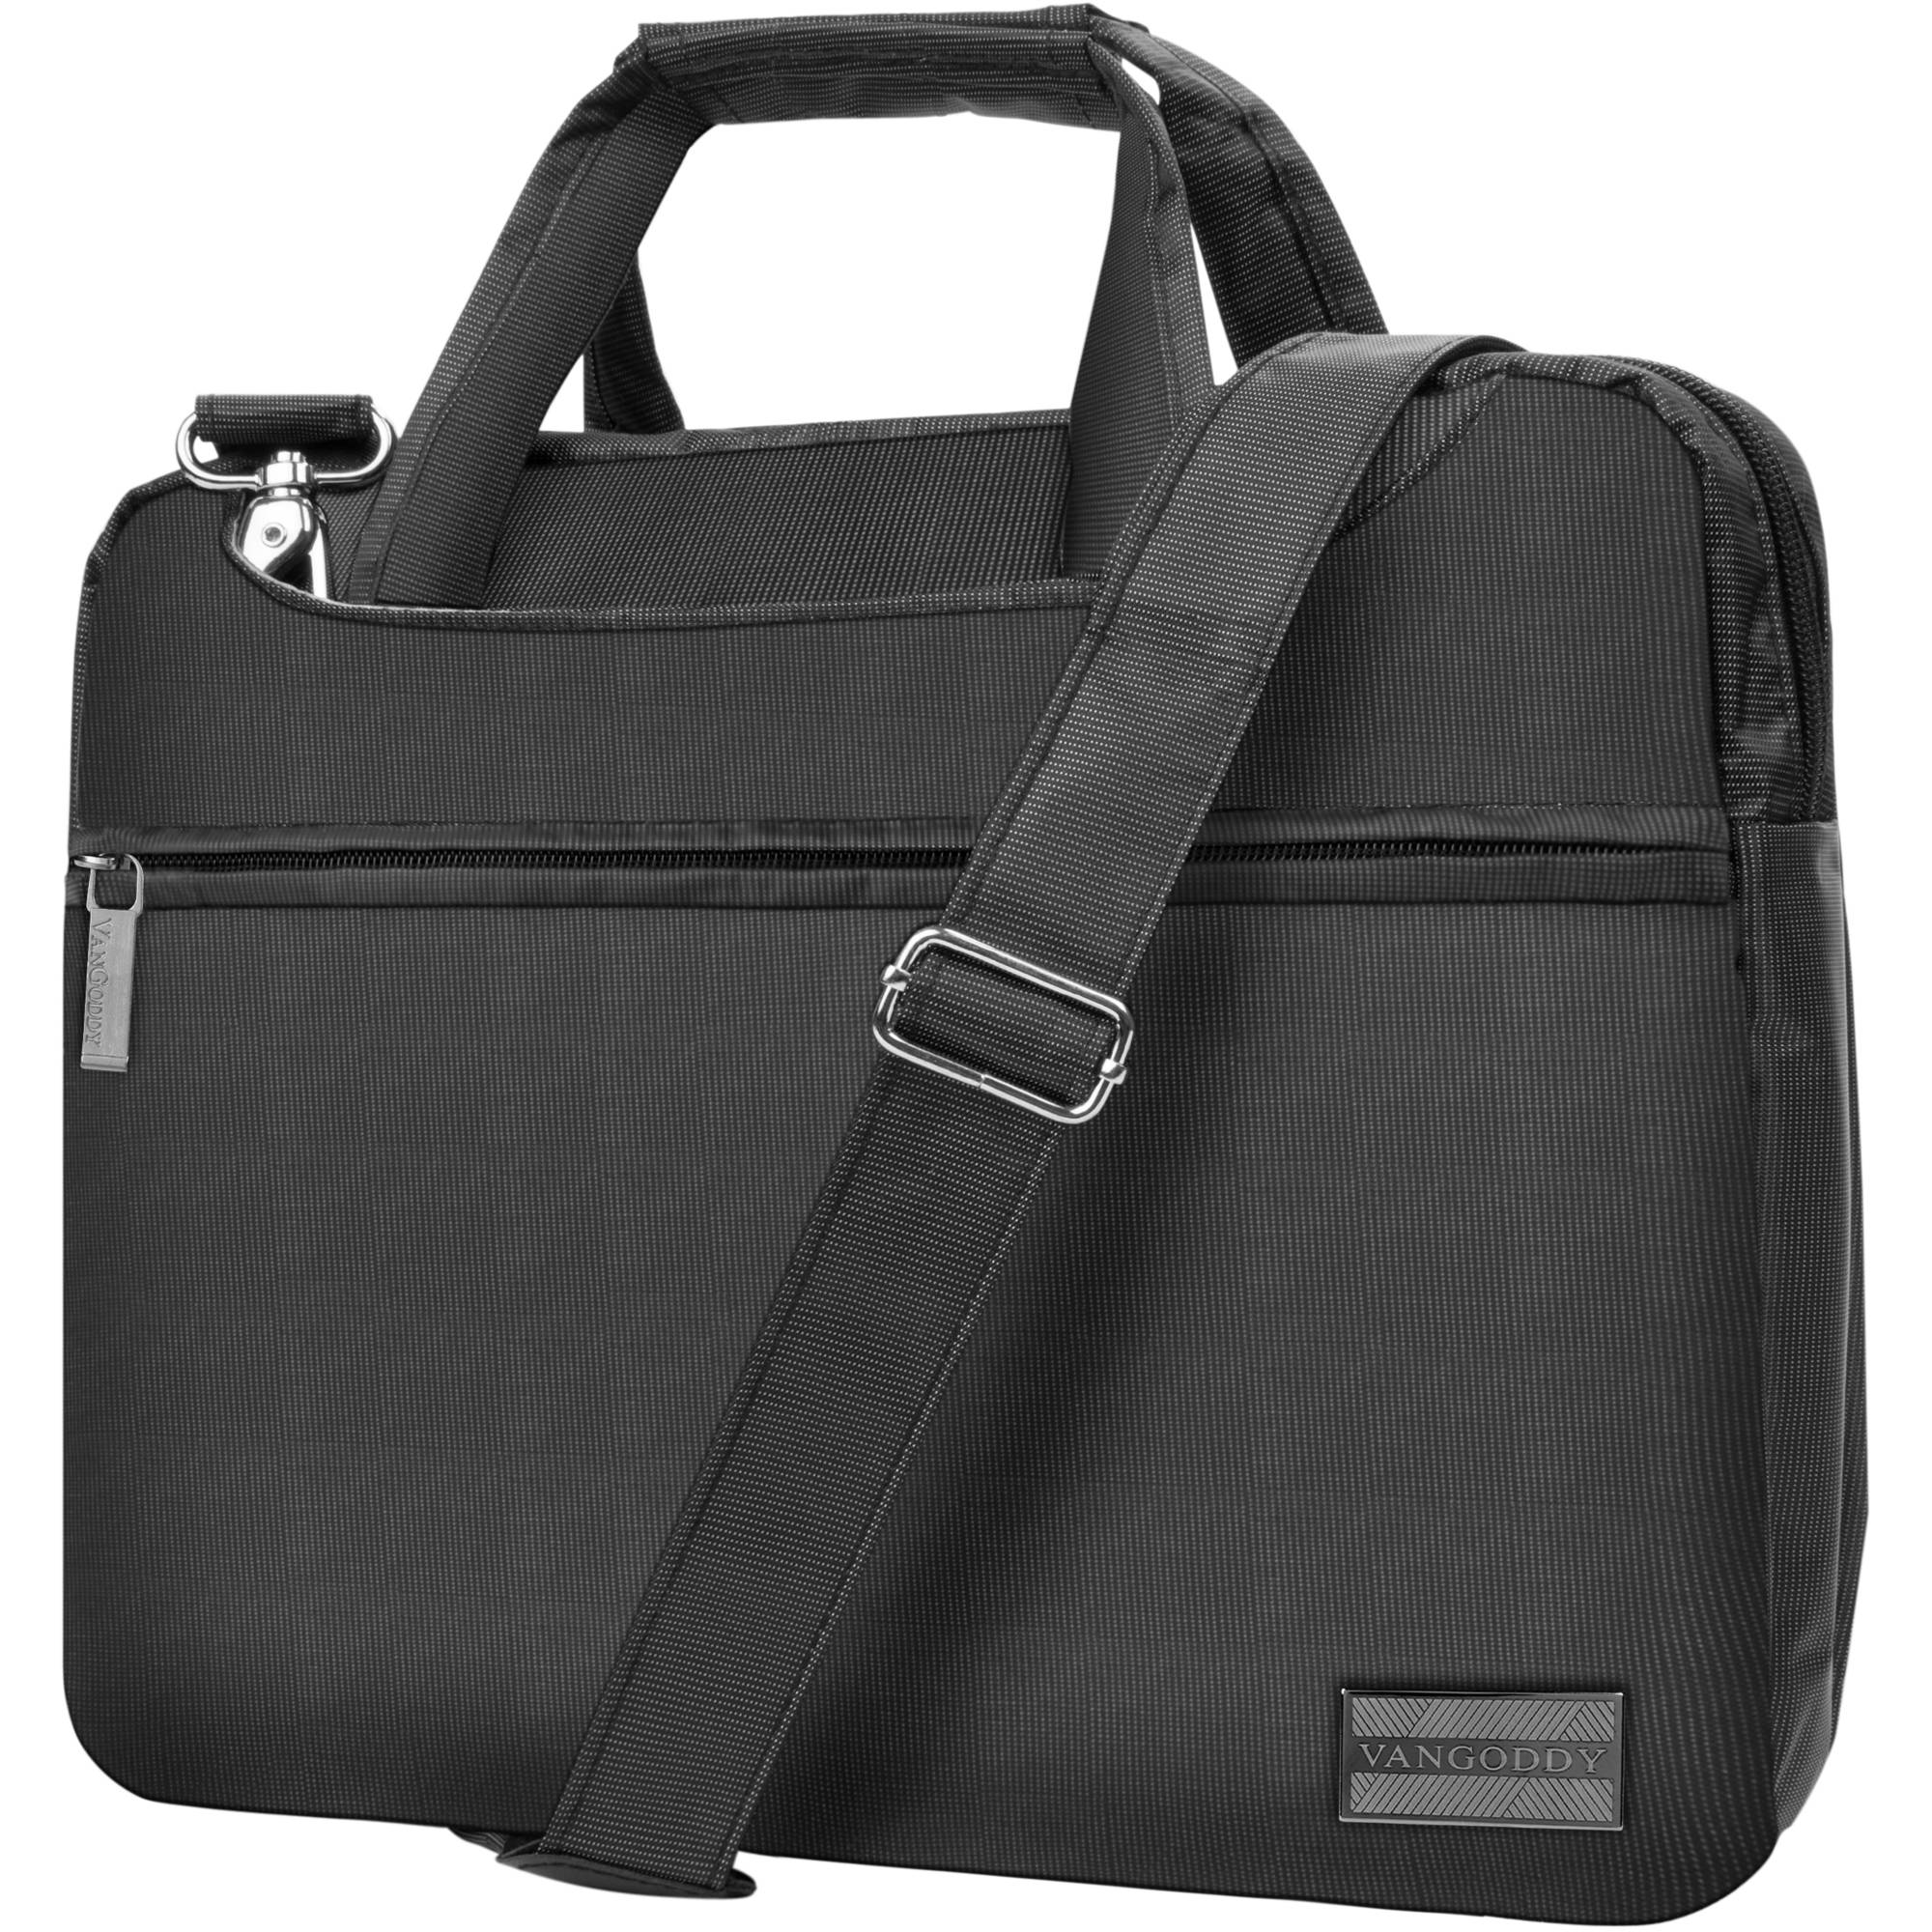 "Vangoddy NineO Shoulder Messenger Laptop Case fits up to 15.6"" Laptops"